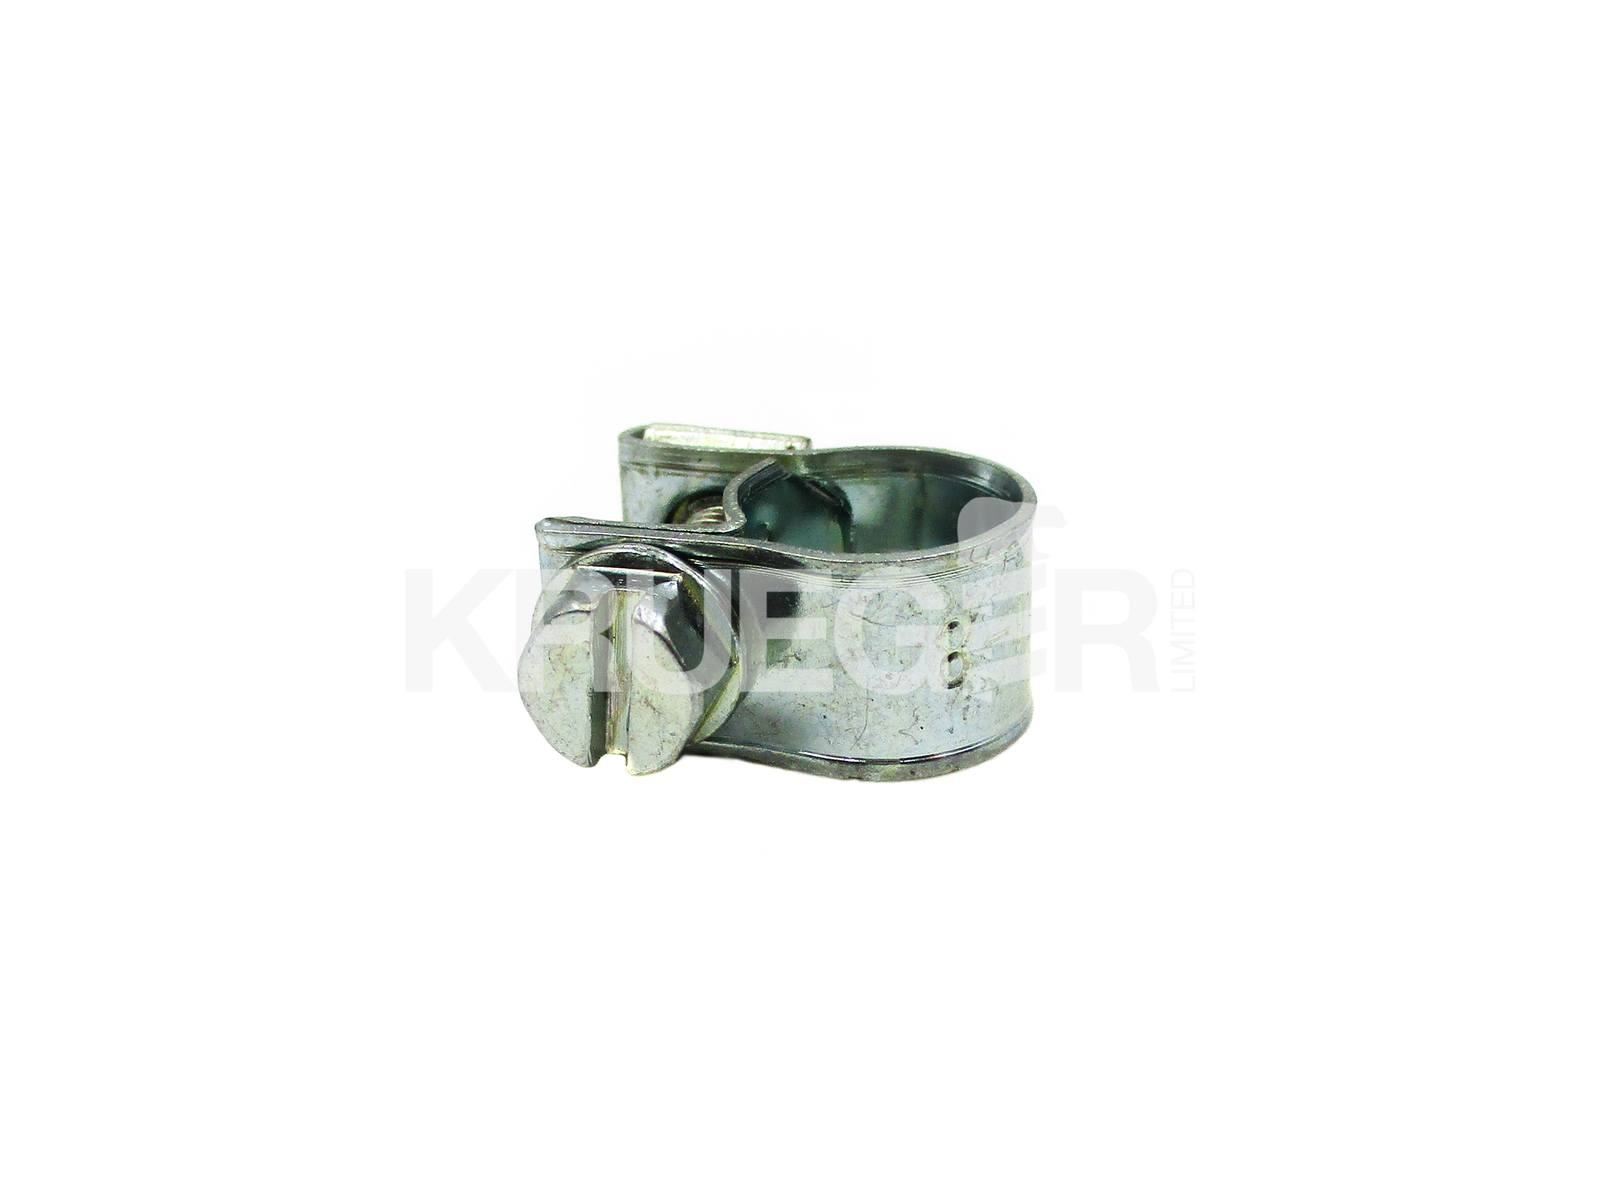 Stainless Steel Fuel Hose Clip